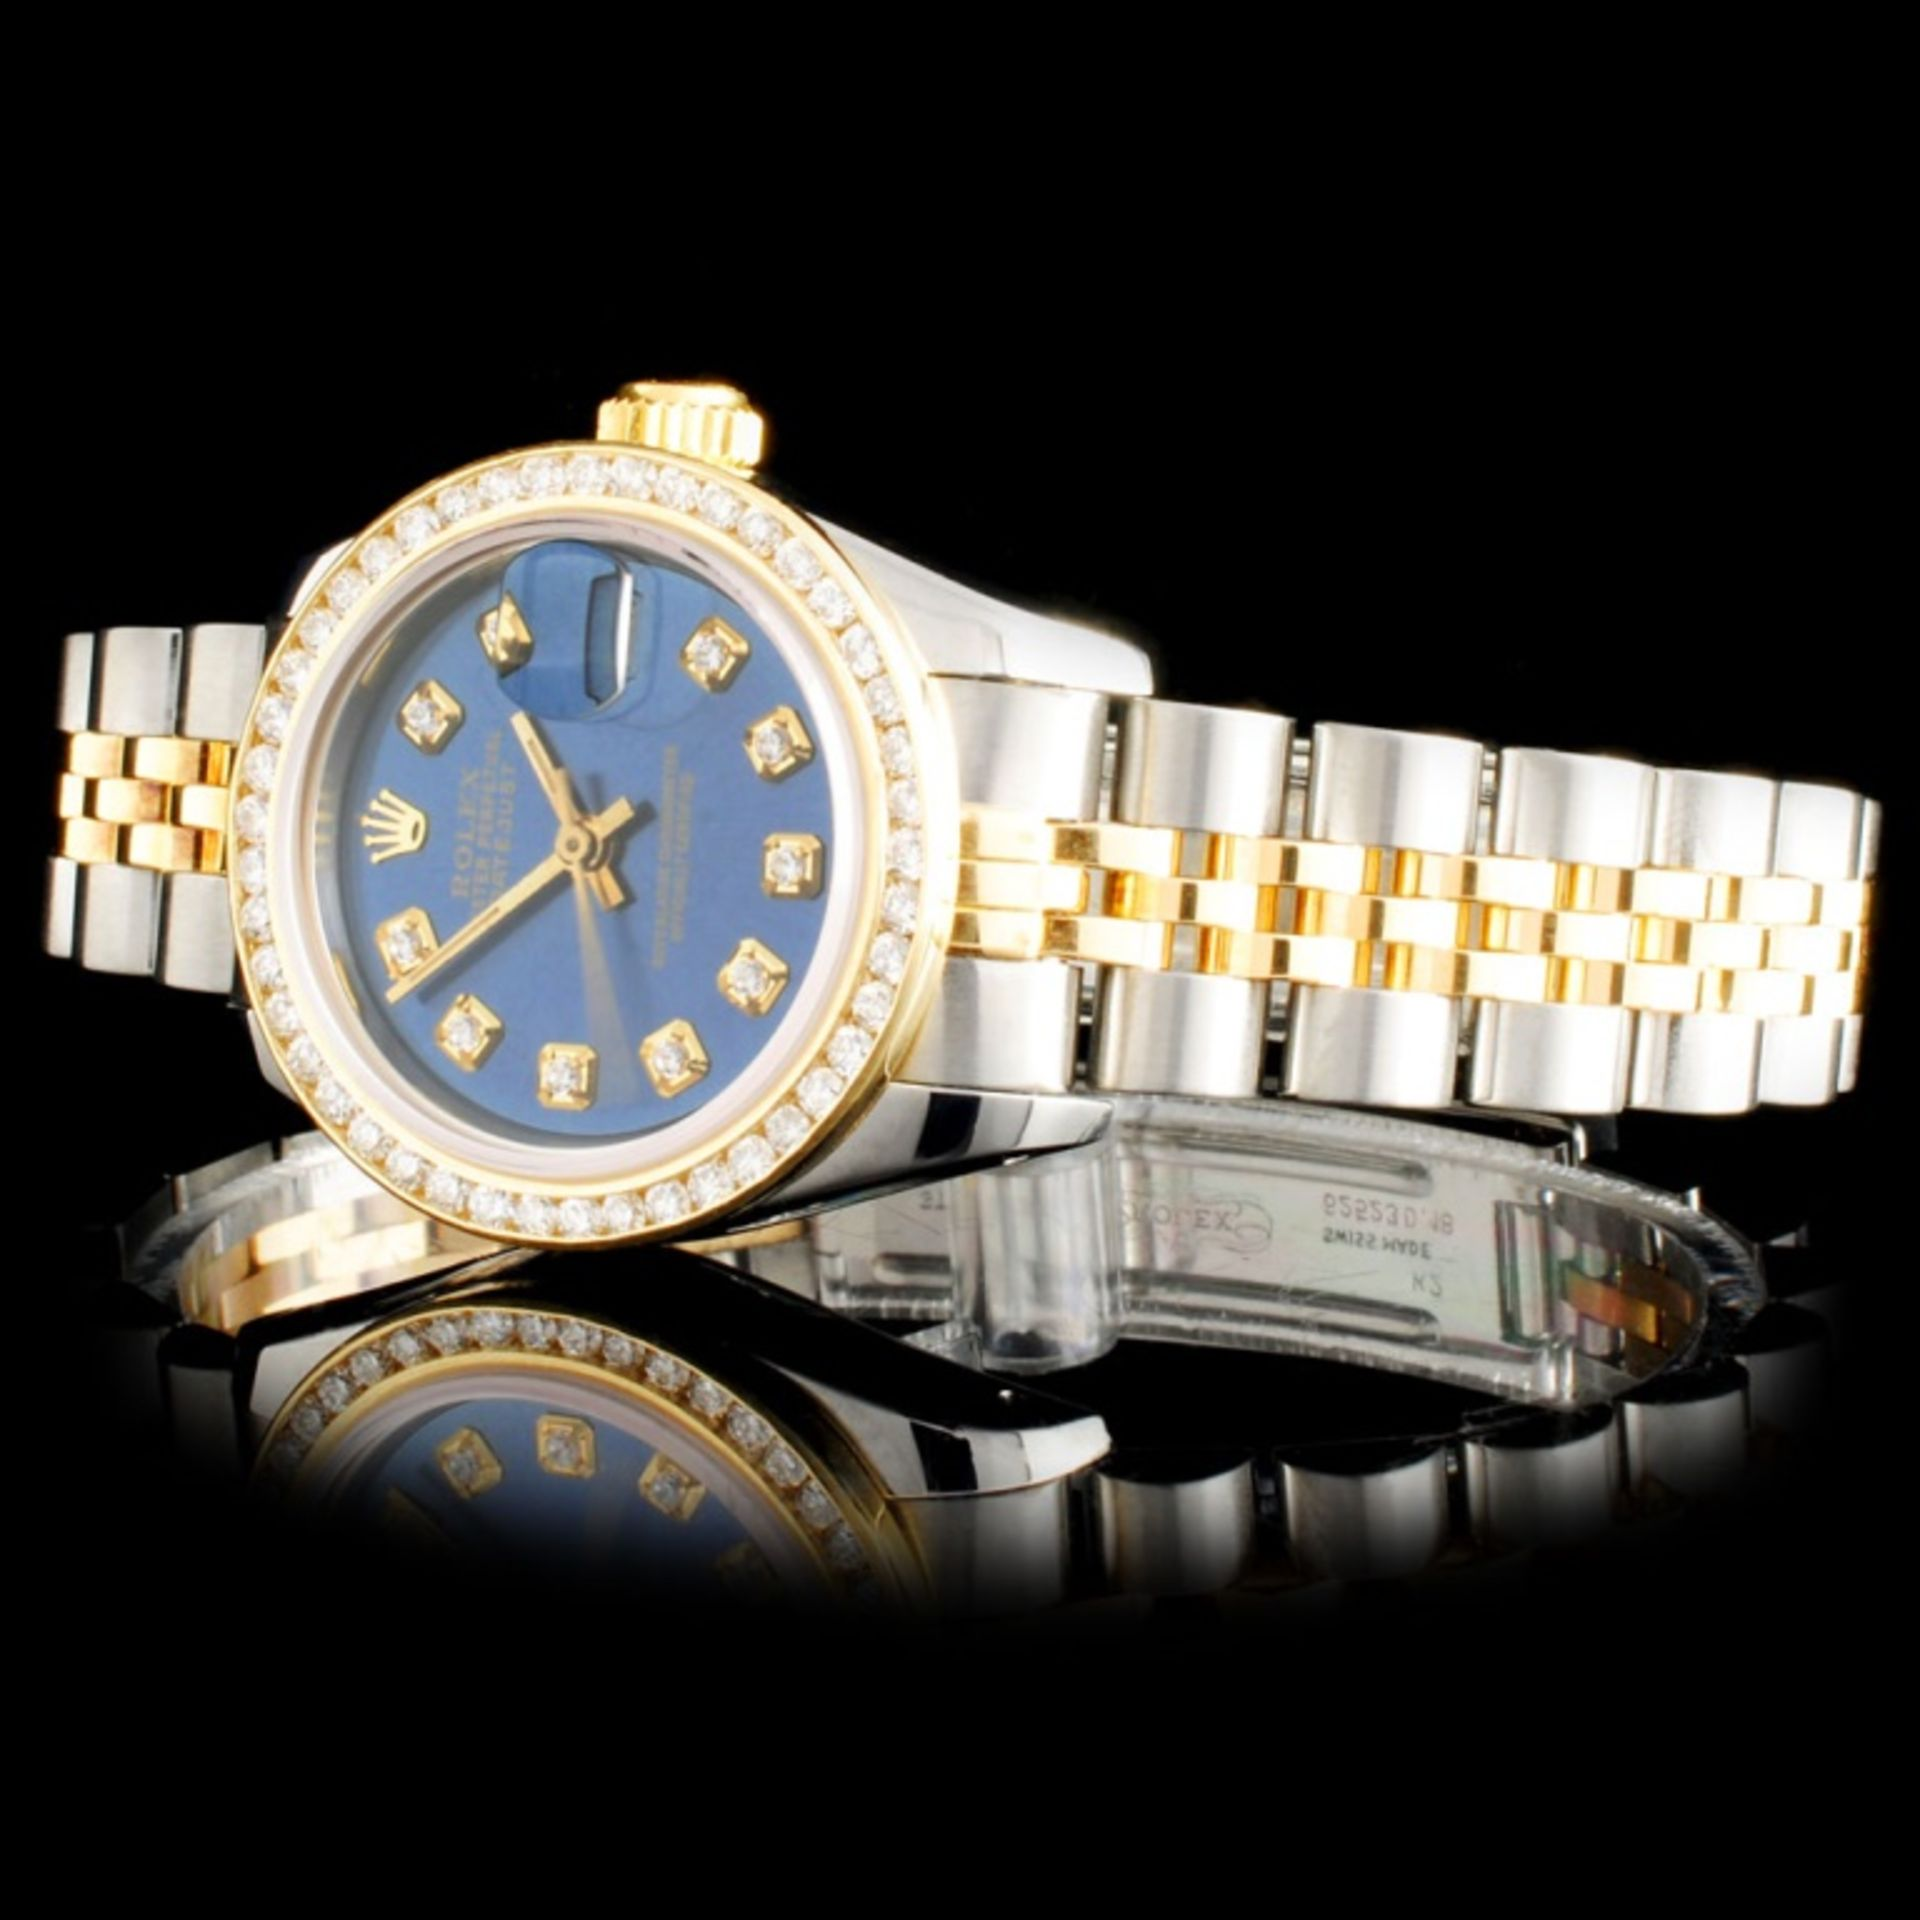 Rolex DateJust Ladies Diamond Wristwatch - Image 2 of 5